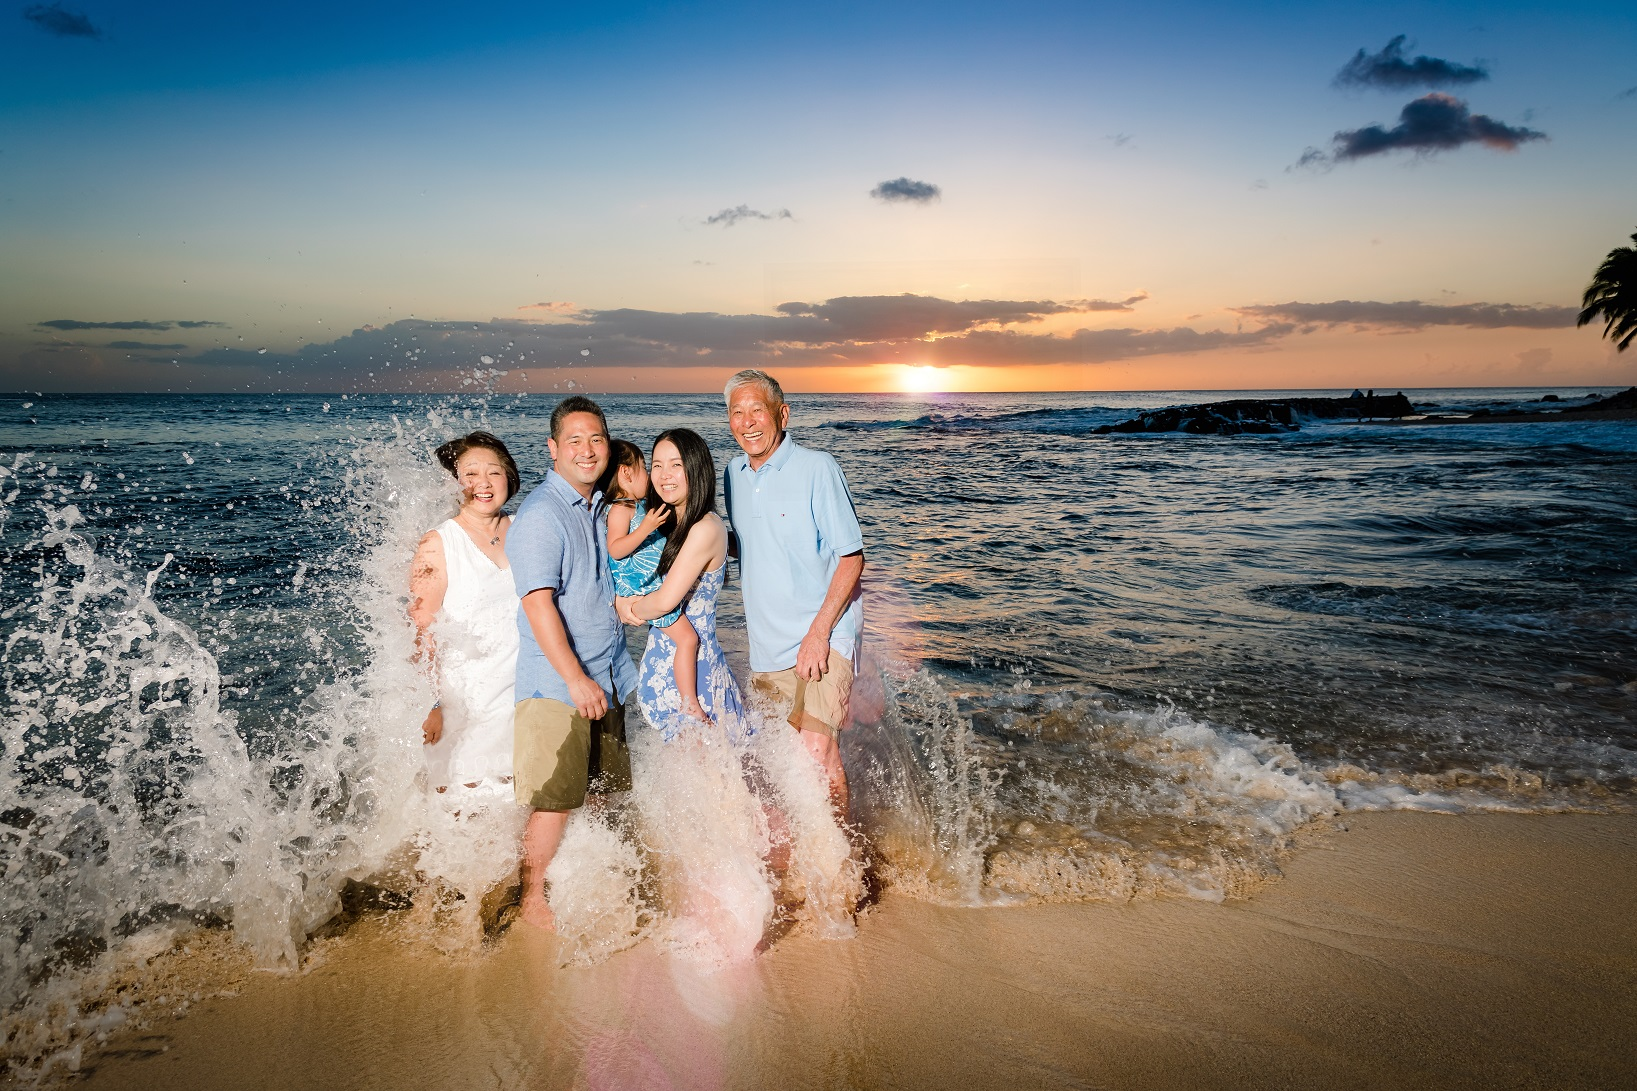 disney aulani family sunset wave splash portrait photography